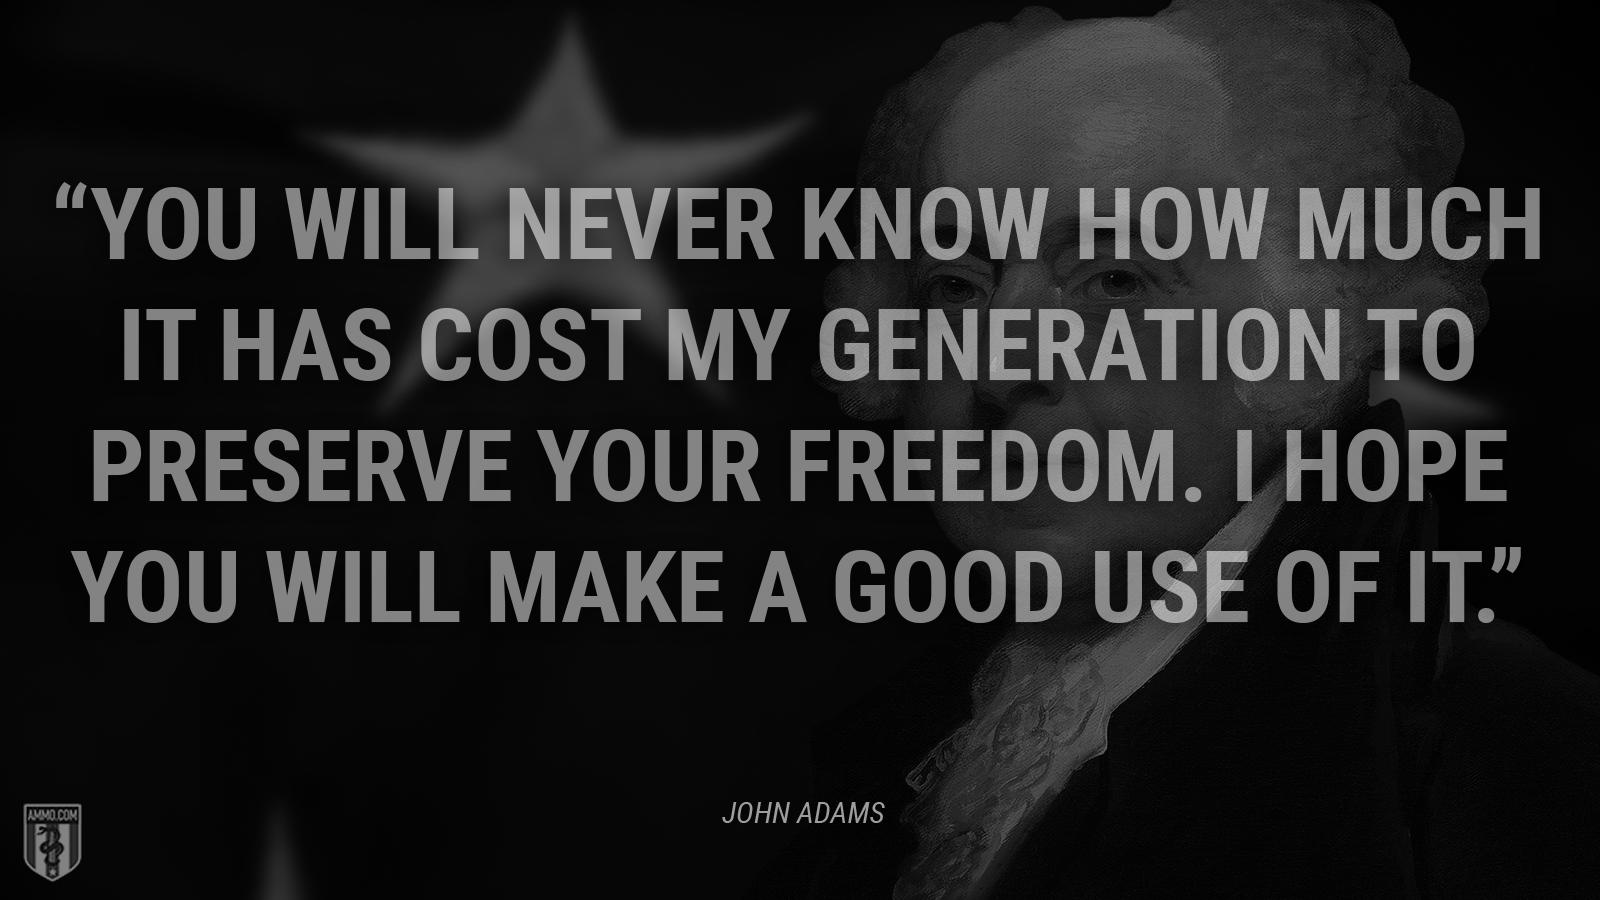 """You will never know how much it has cost my generation to preserve YOUR freedom. I hope you will make a good use of it."" – John Adams [1600×900]"